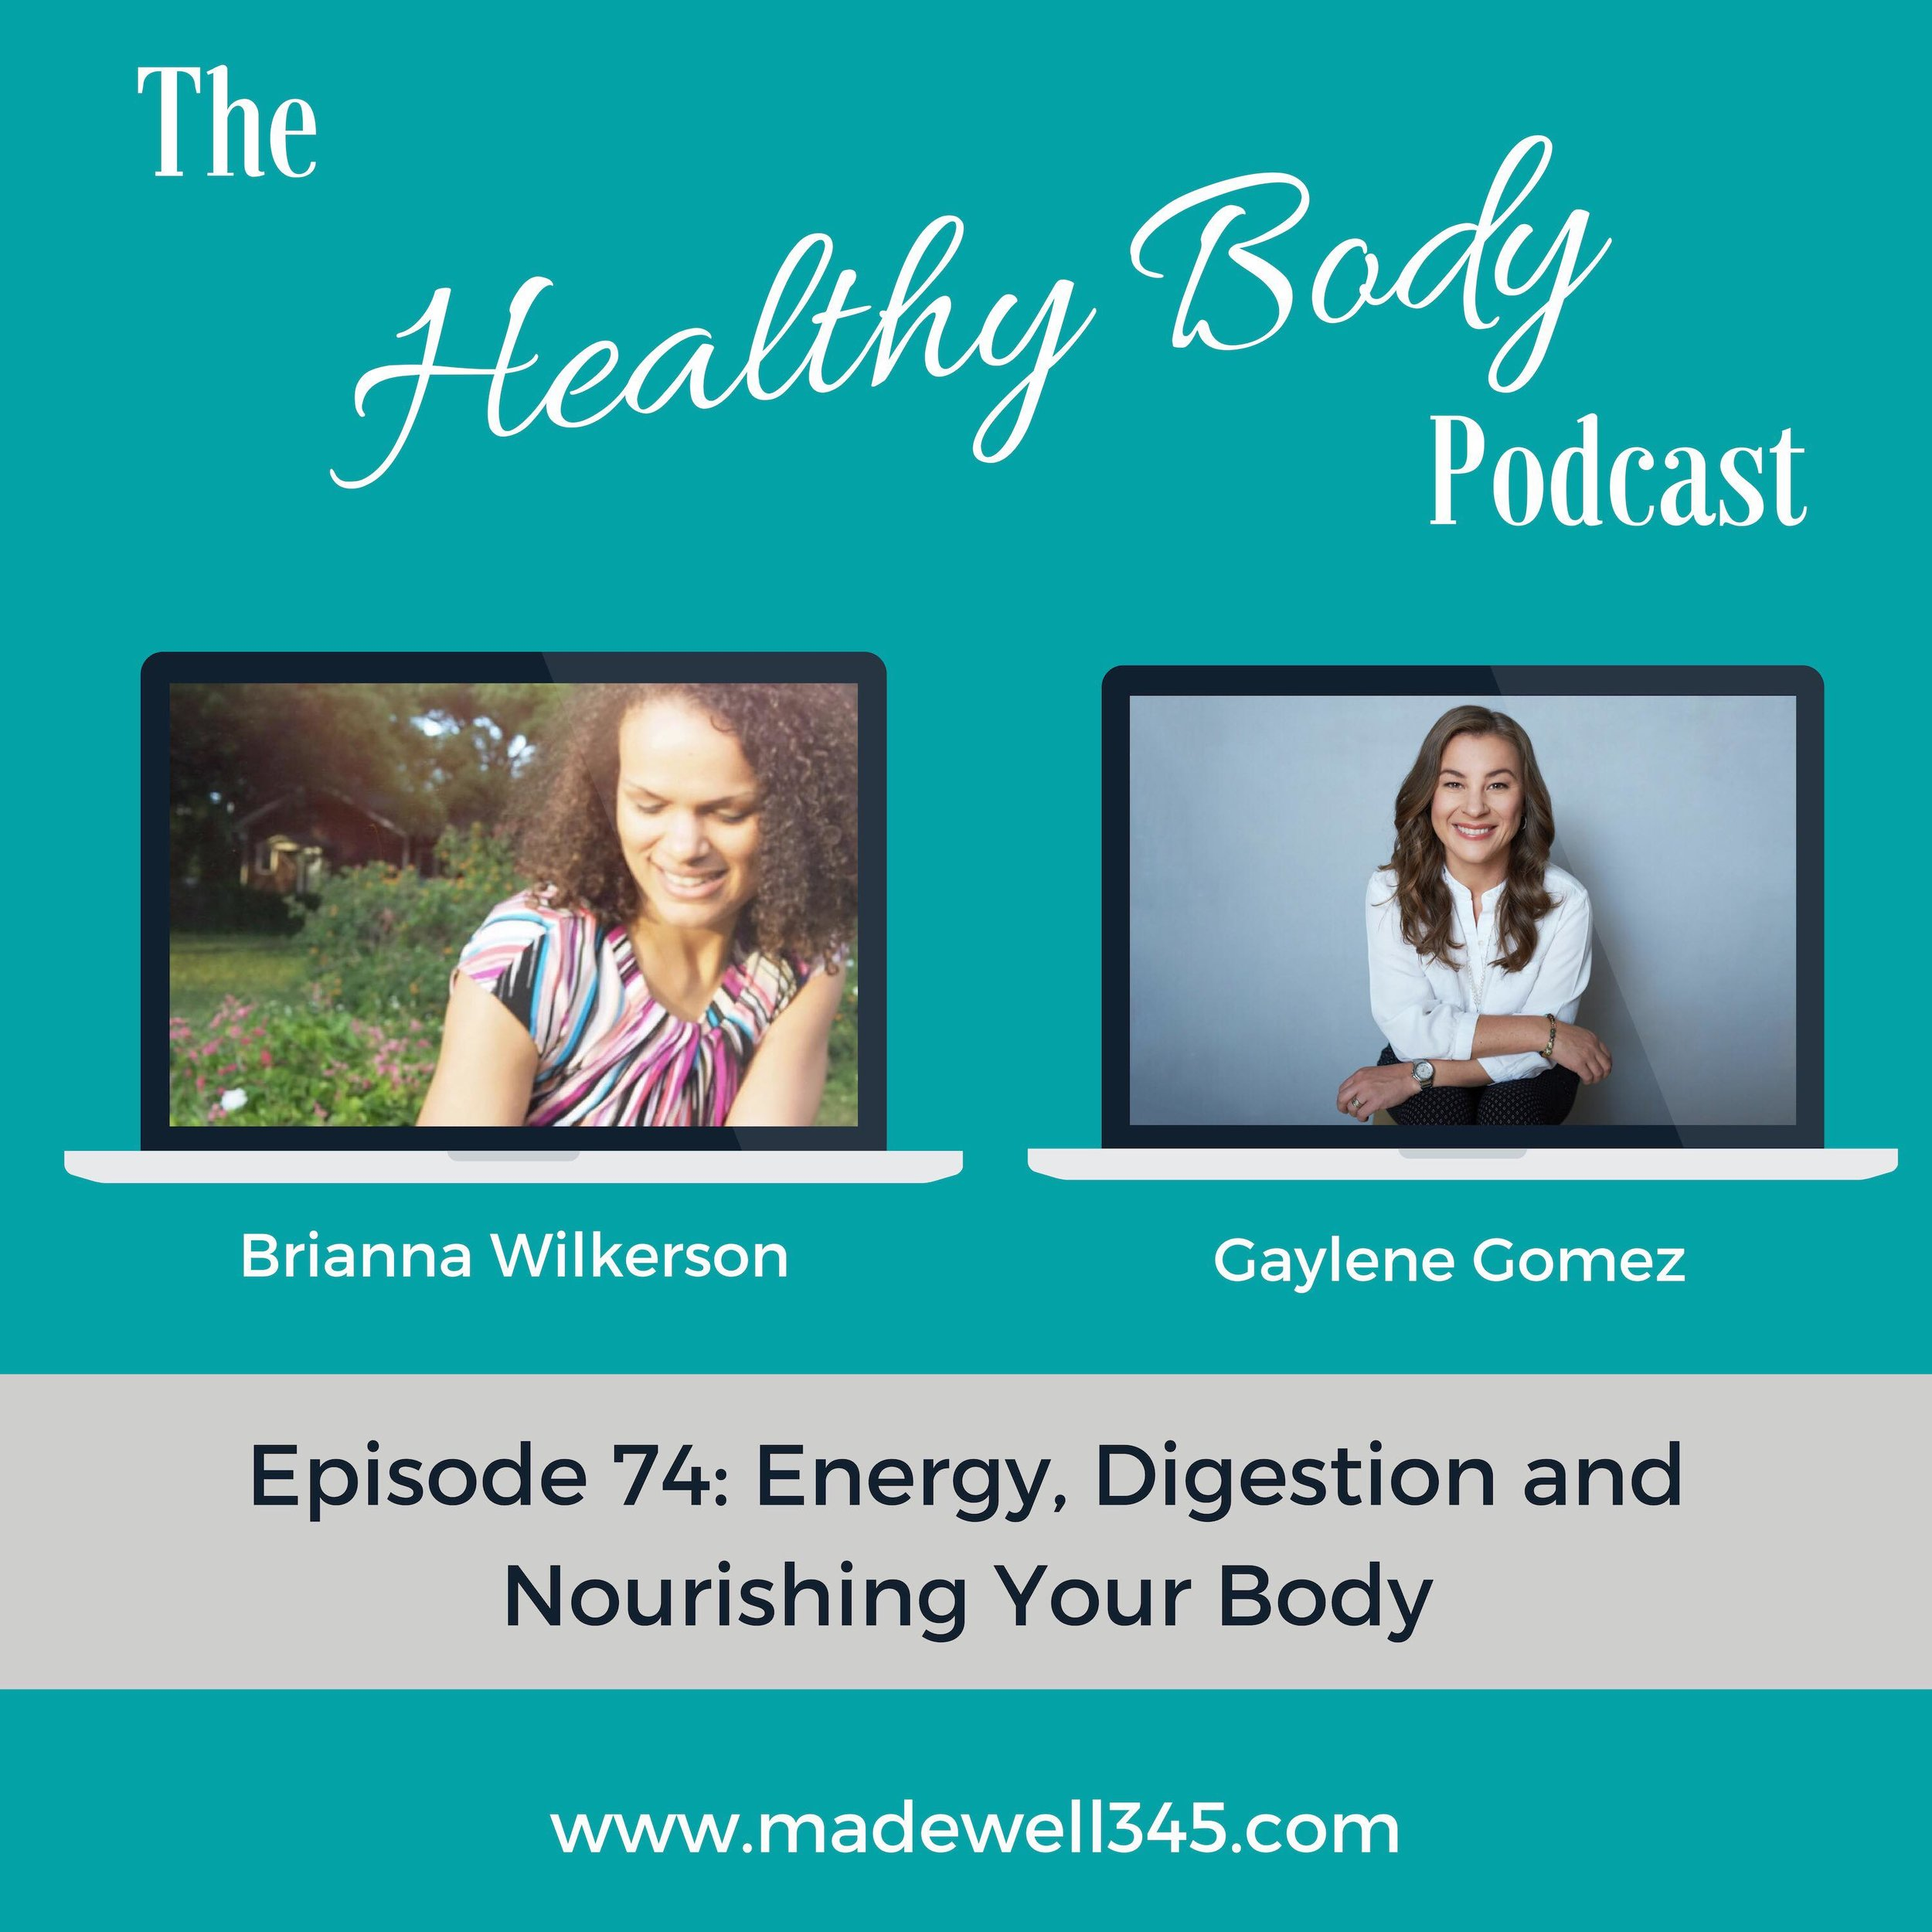 Healthy Body Podcast Gaylene Gomez